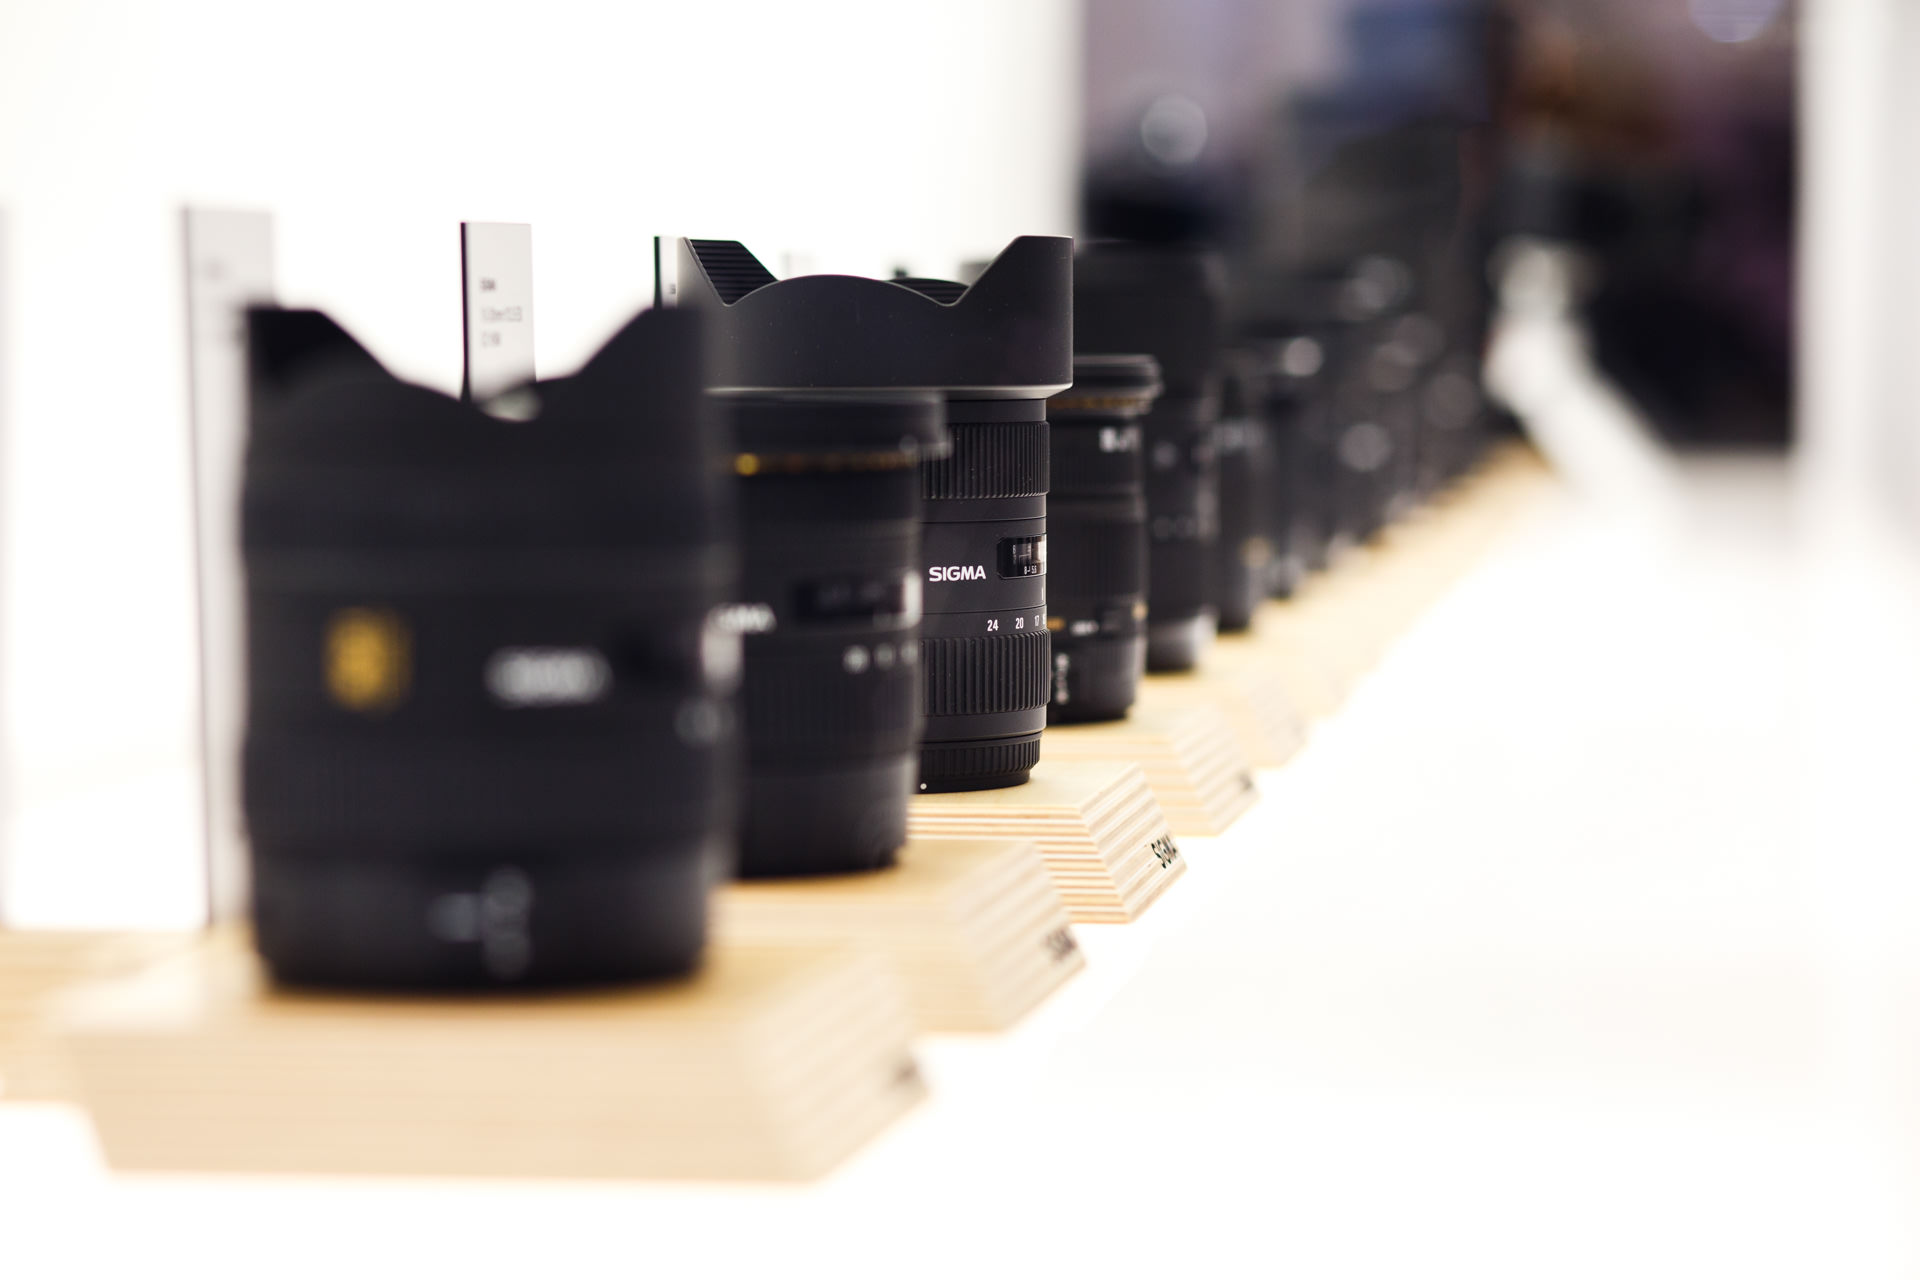 Amongst some of the typical products you would expect at the show like these Sigma lenses...